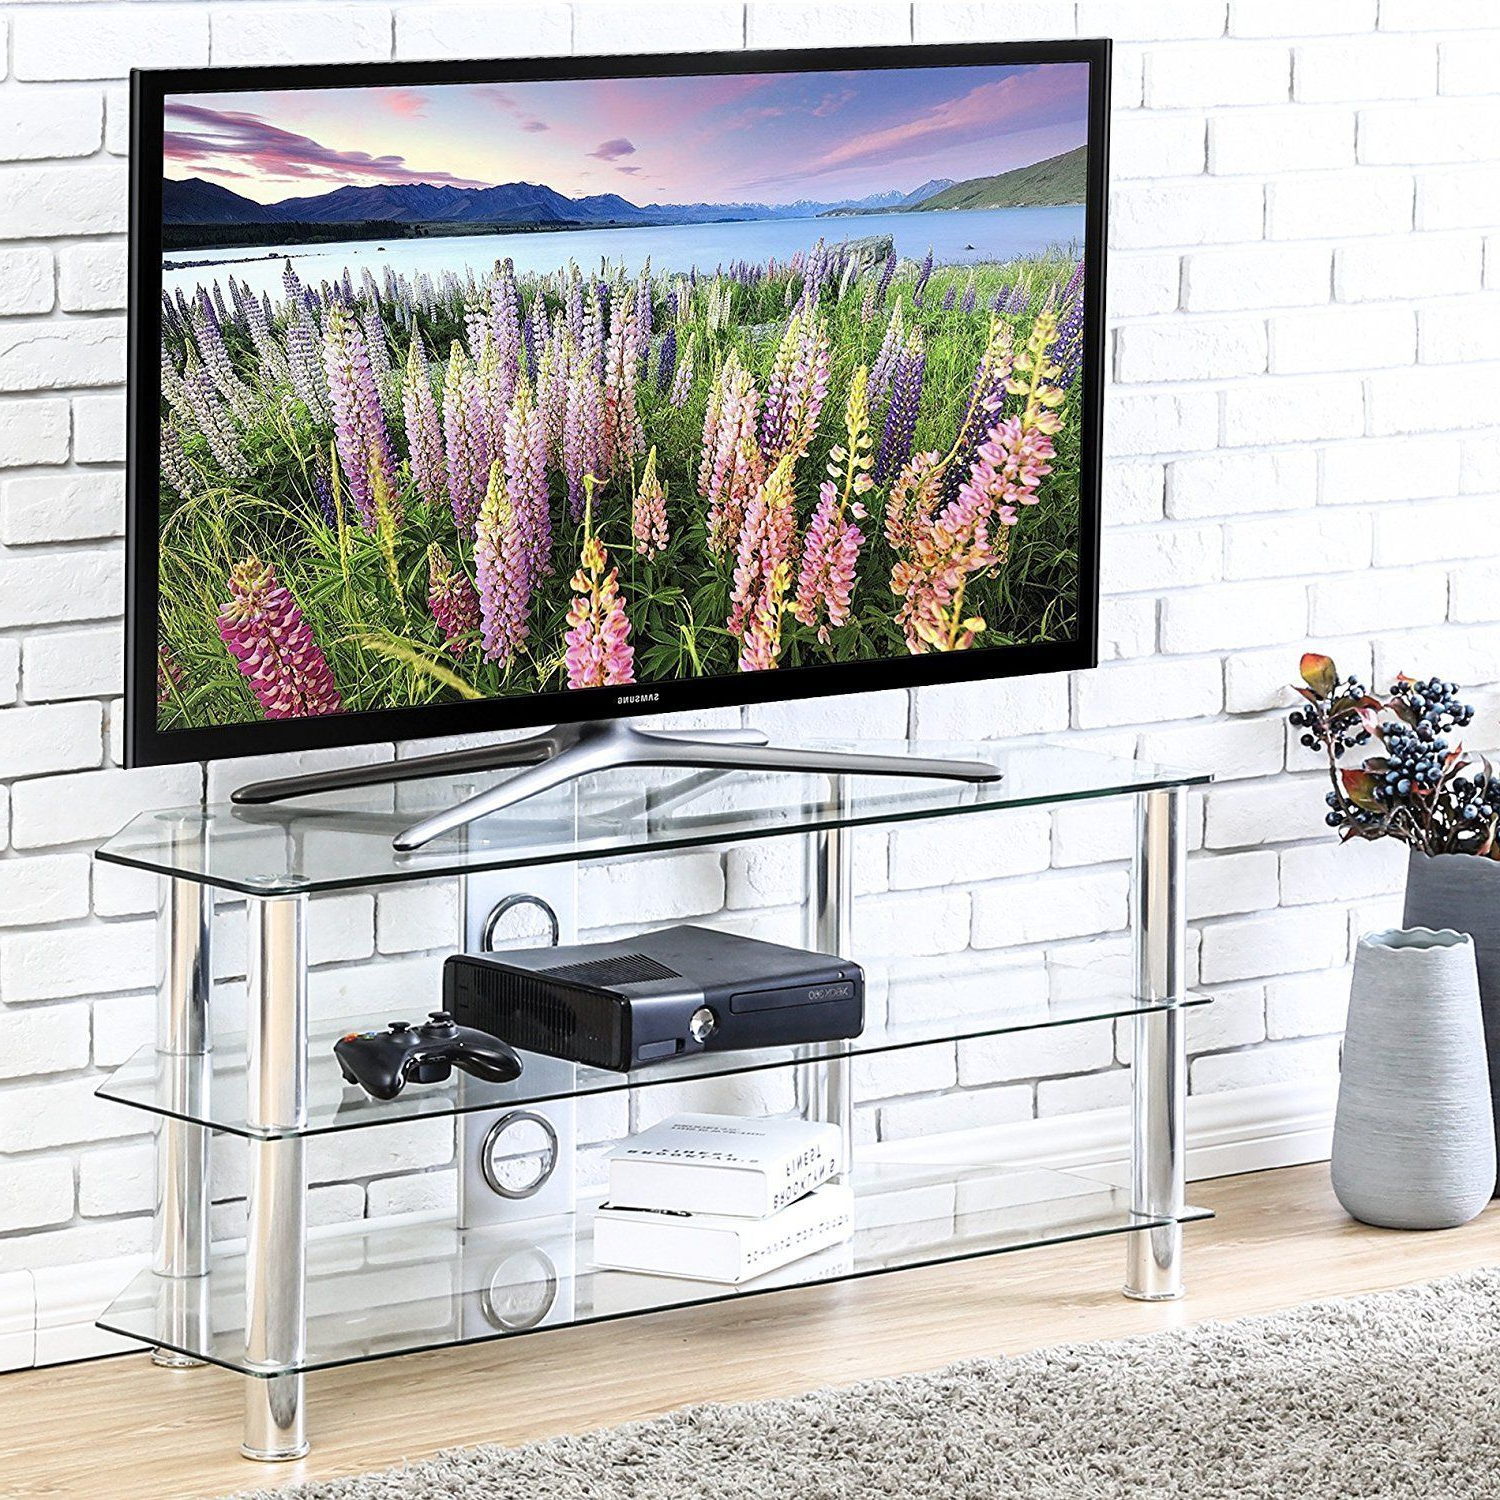 Most Recent Fitueyes Curved Glass Corner Tv Stand For Up To 46inch Chrome Legs For Corner Tv Stands For 46 Inch Flat Screen (View 13 of 20)